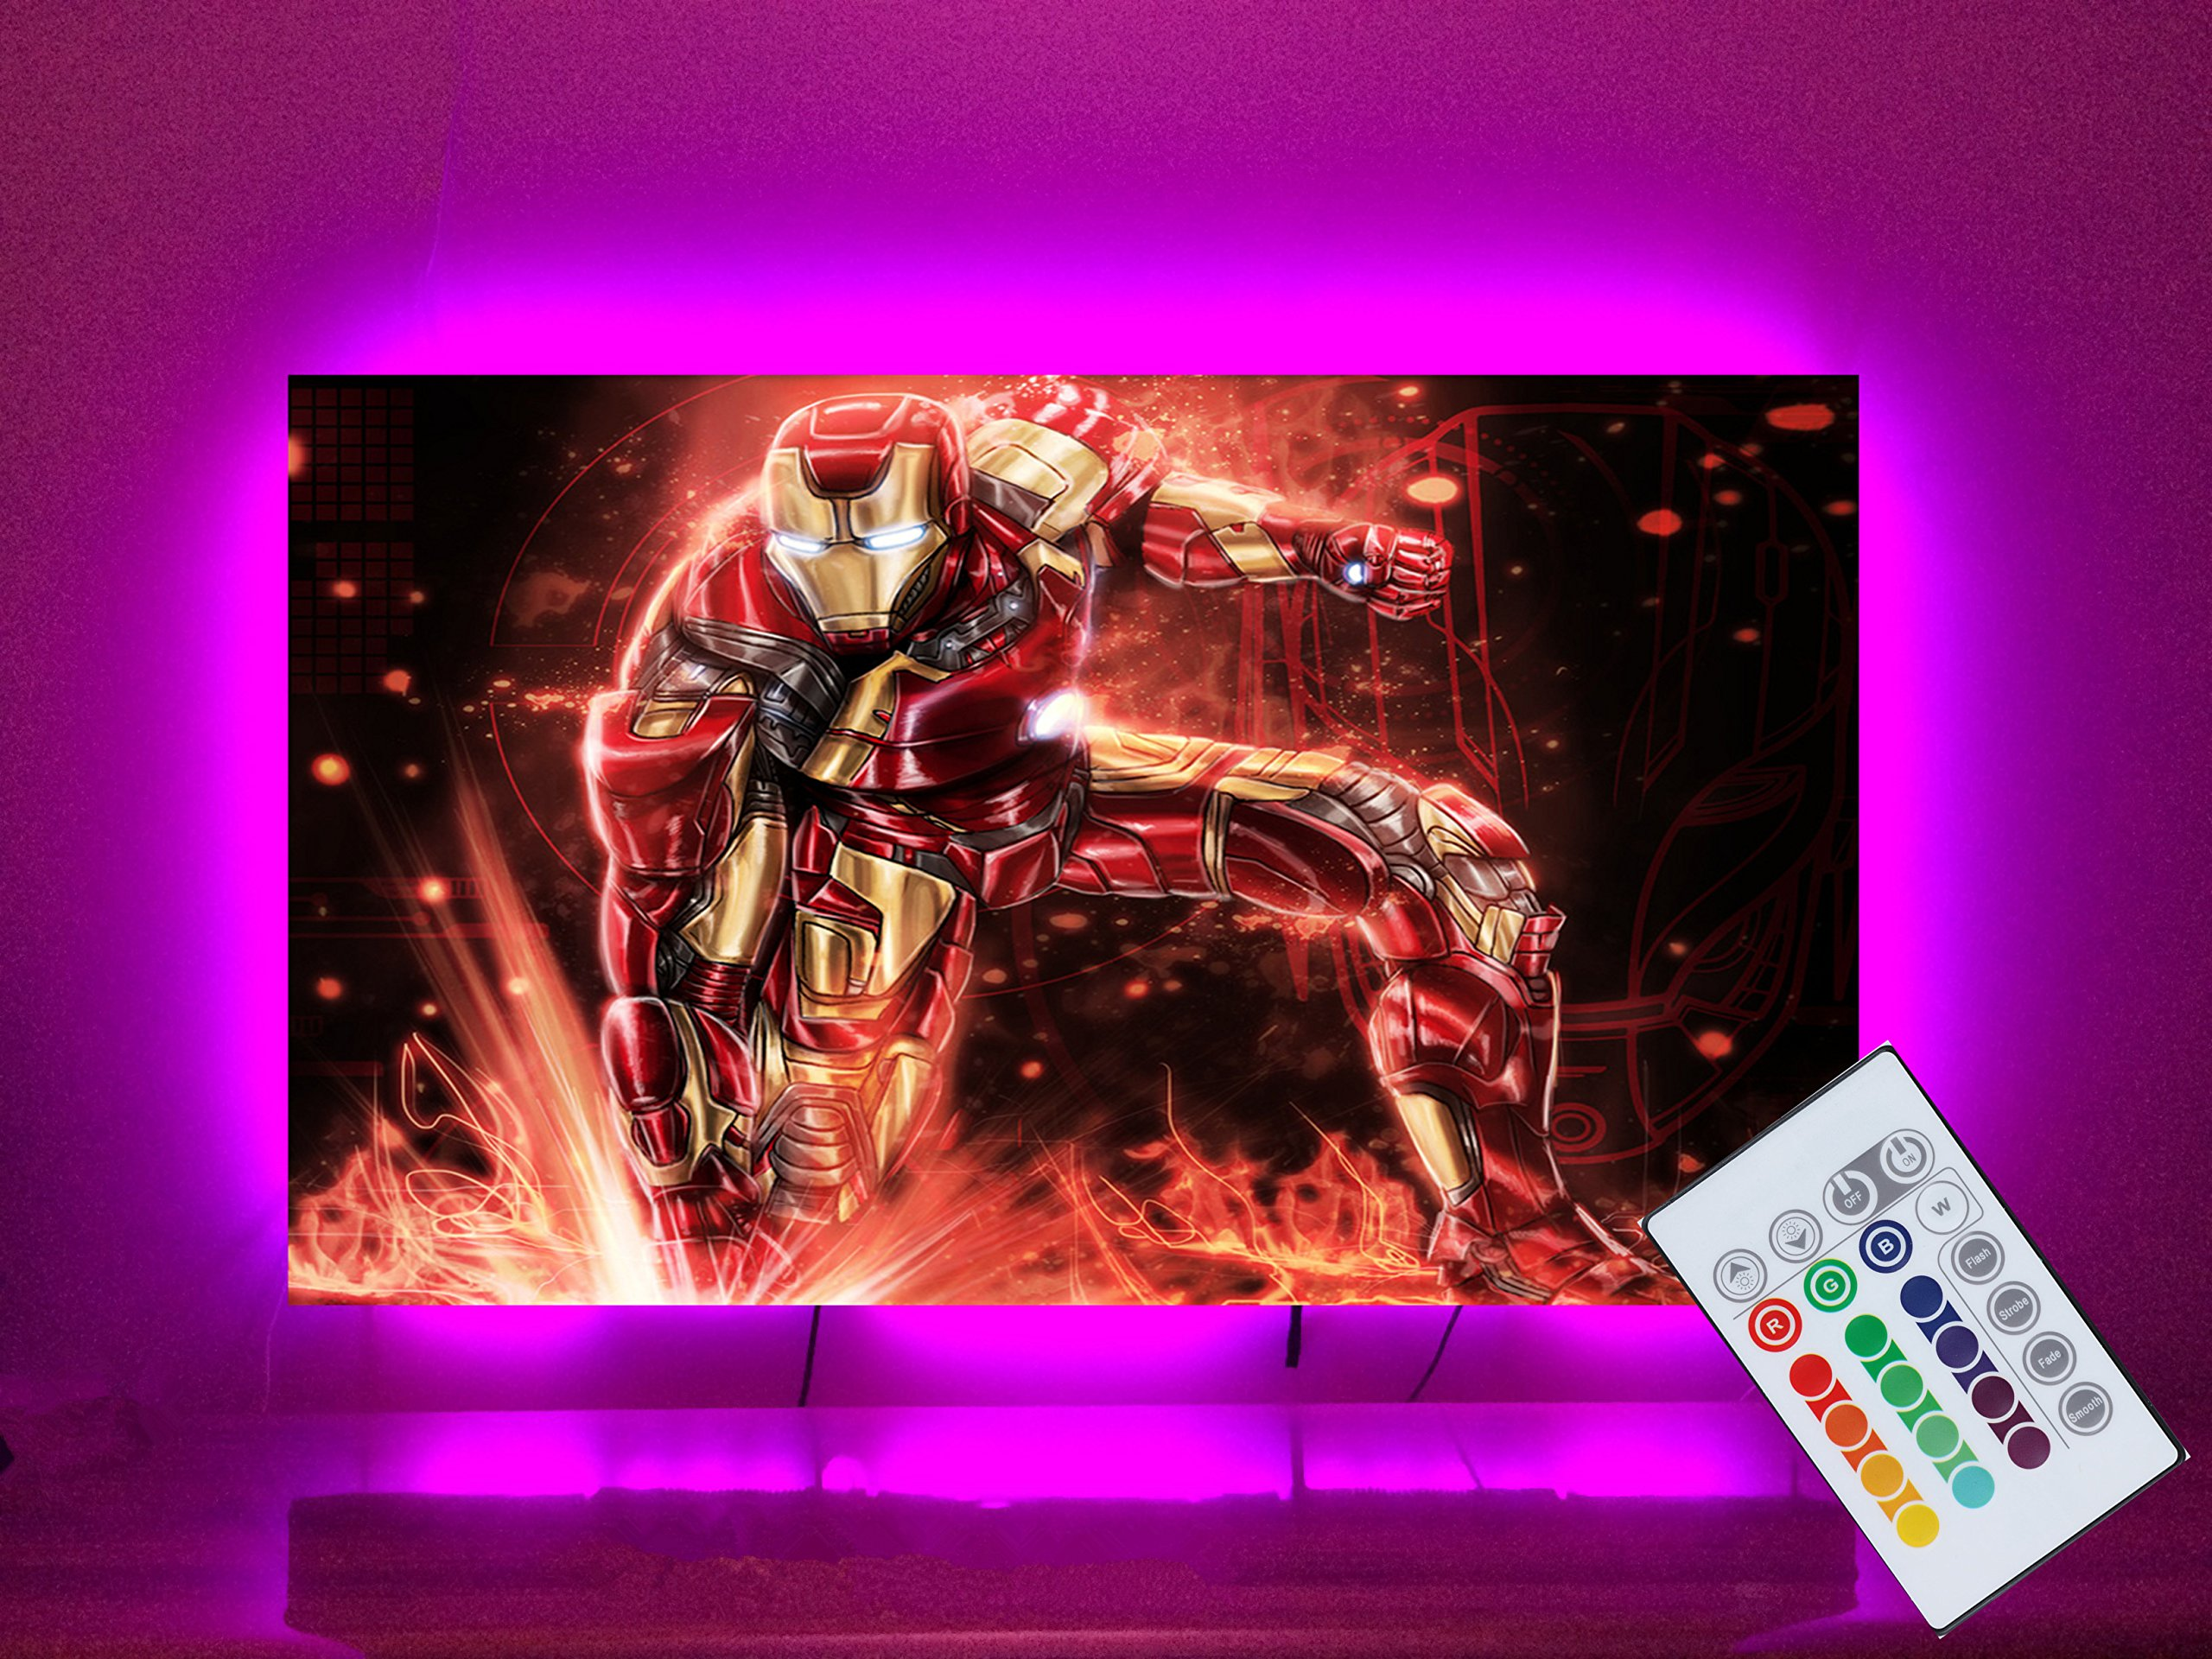 LED Strip Lights for 55 60 inches Back of TV Decor USB Operate 11.28ft Waterproof RGB Backlighting with 20 Colors Changing Remote (White 55'' 60'') by IDIFY (Image #2)